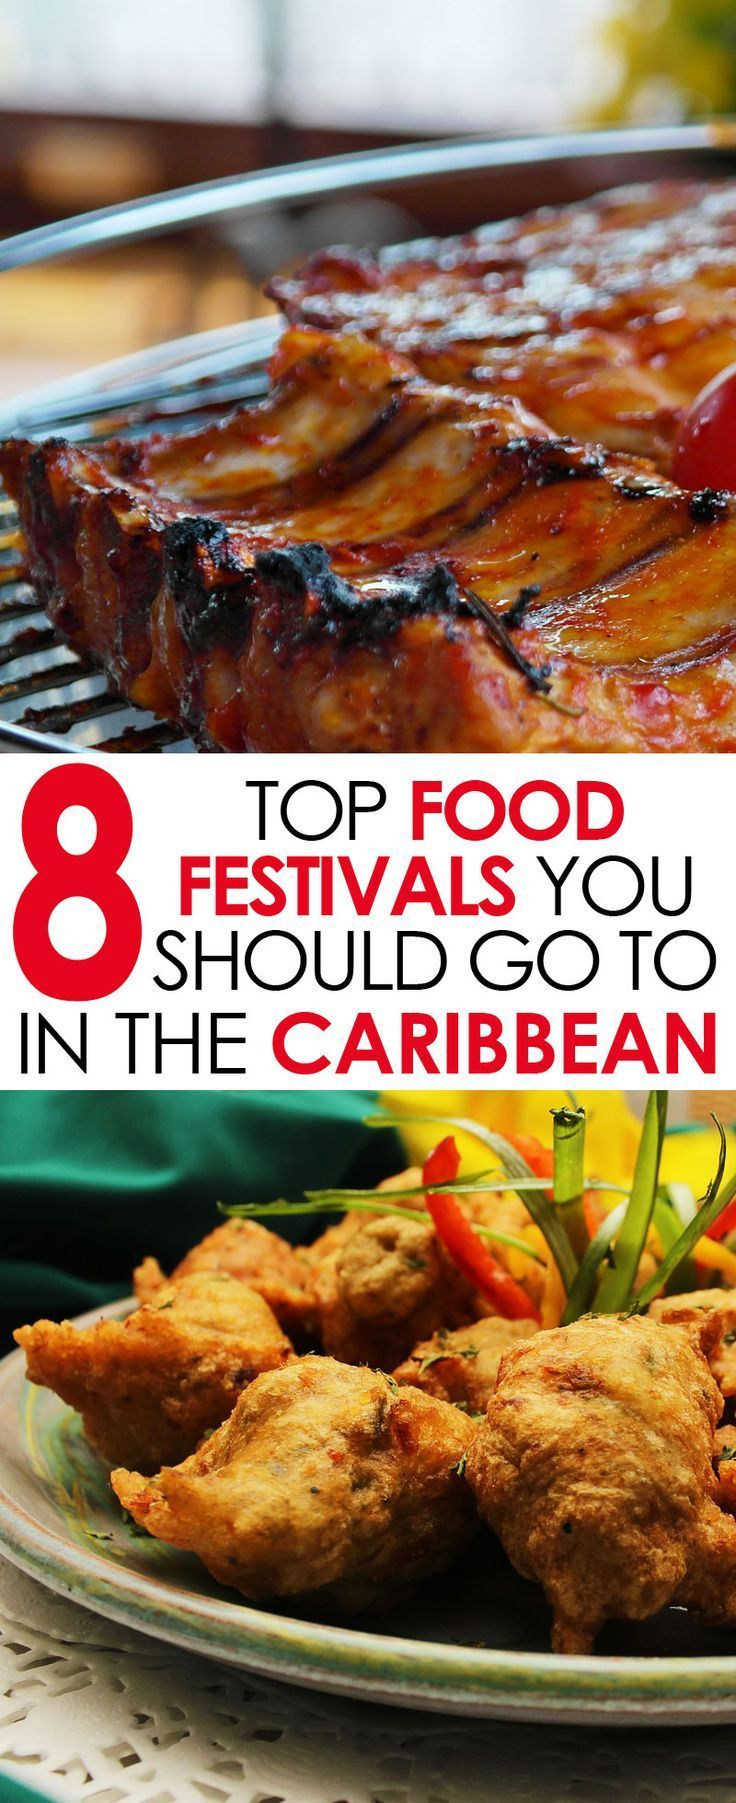 Because the food of the Caribbean has been influenced by so many other cultures, it is a must for any foodie or food travel lover to visit the top Caribbean food festivals and enjoy the unique cuisine of the region. #Caribbeanfood #foodie #foodfestivals #